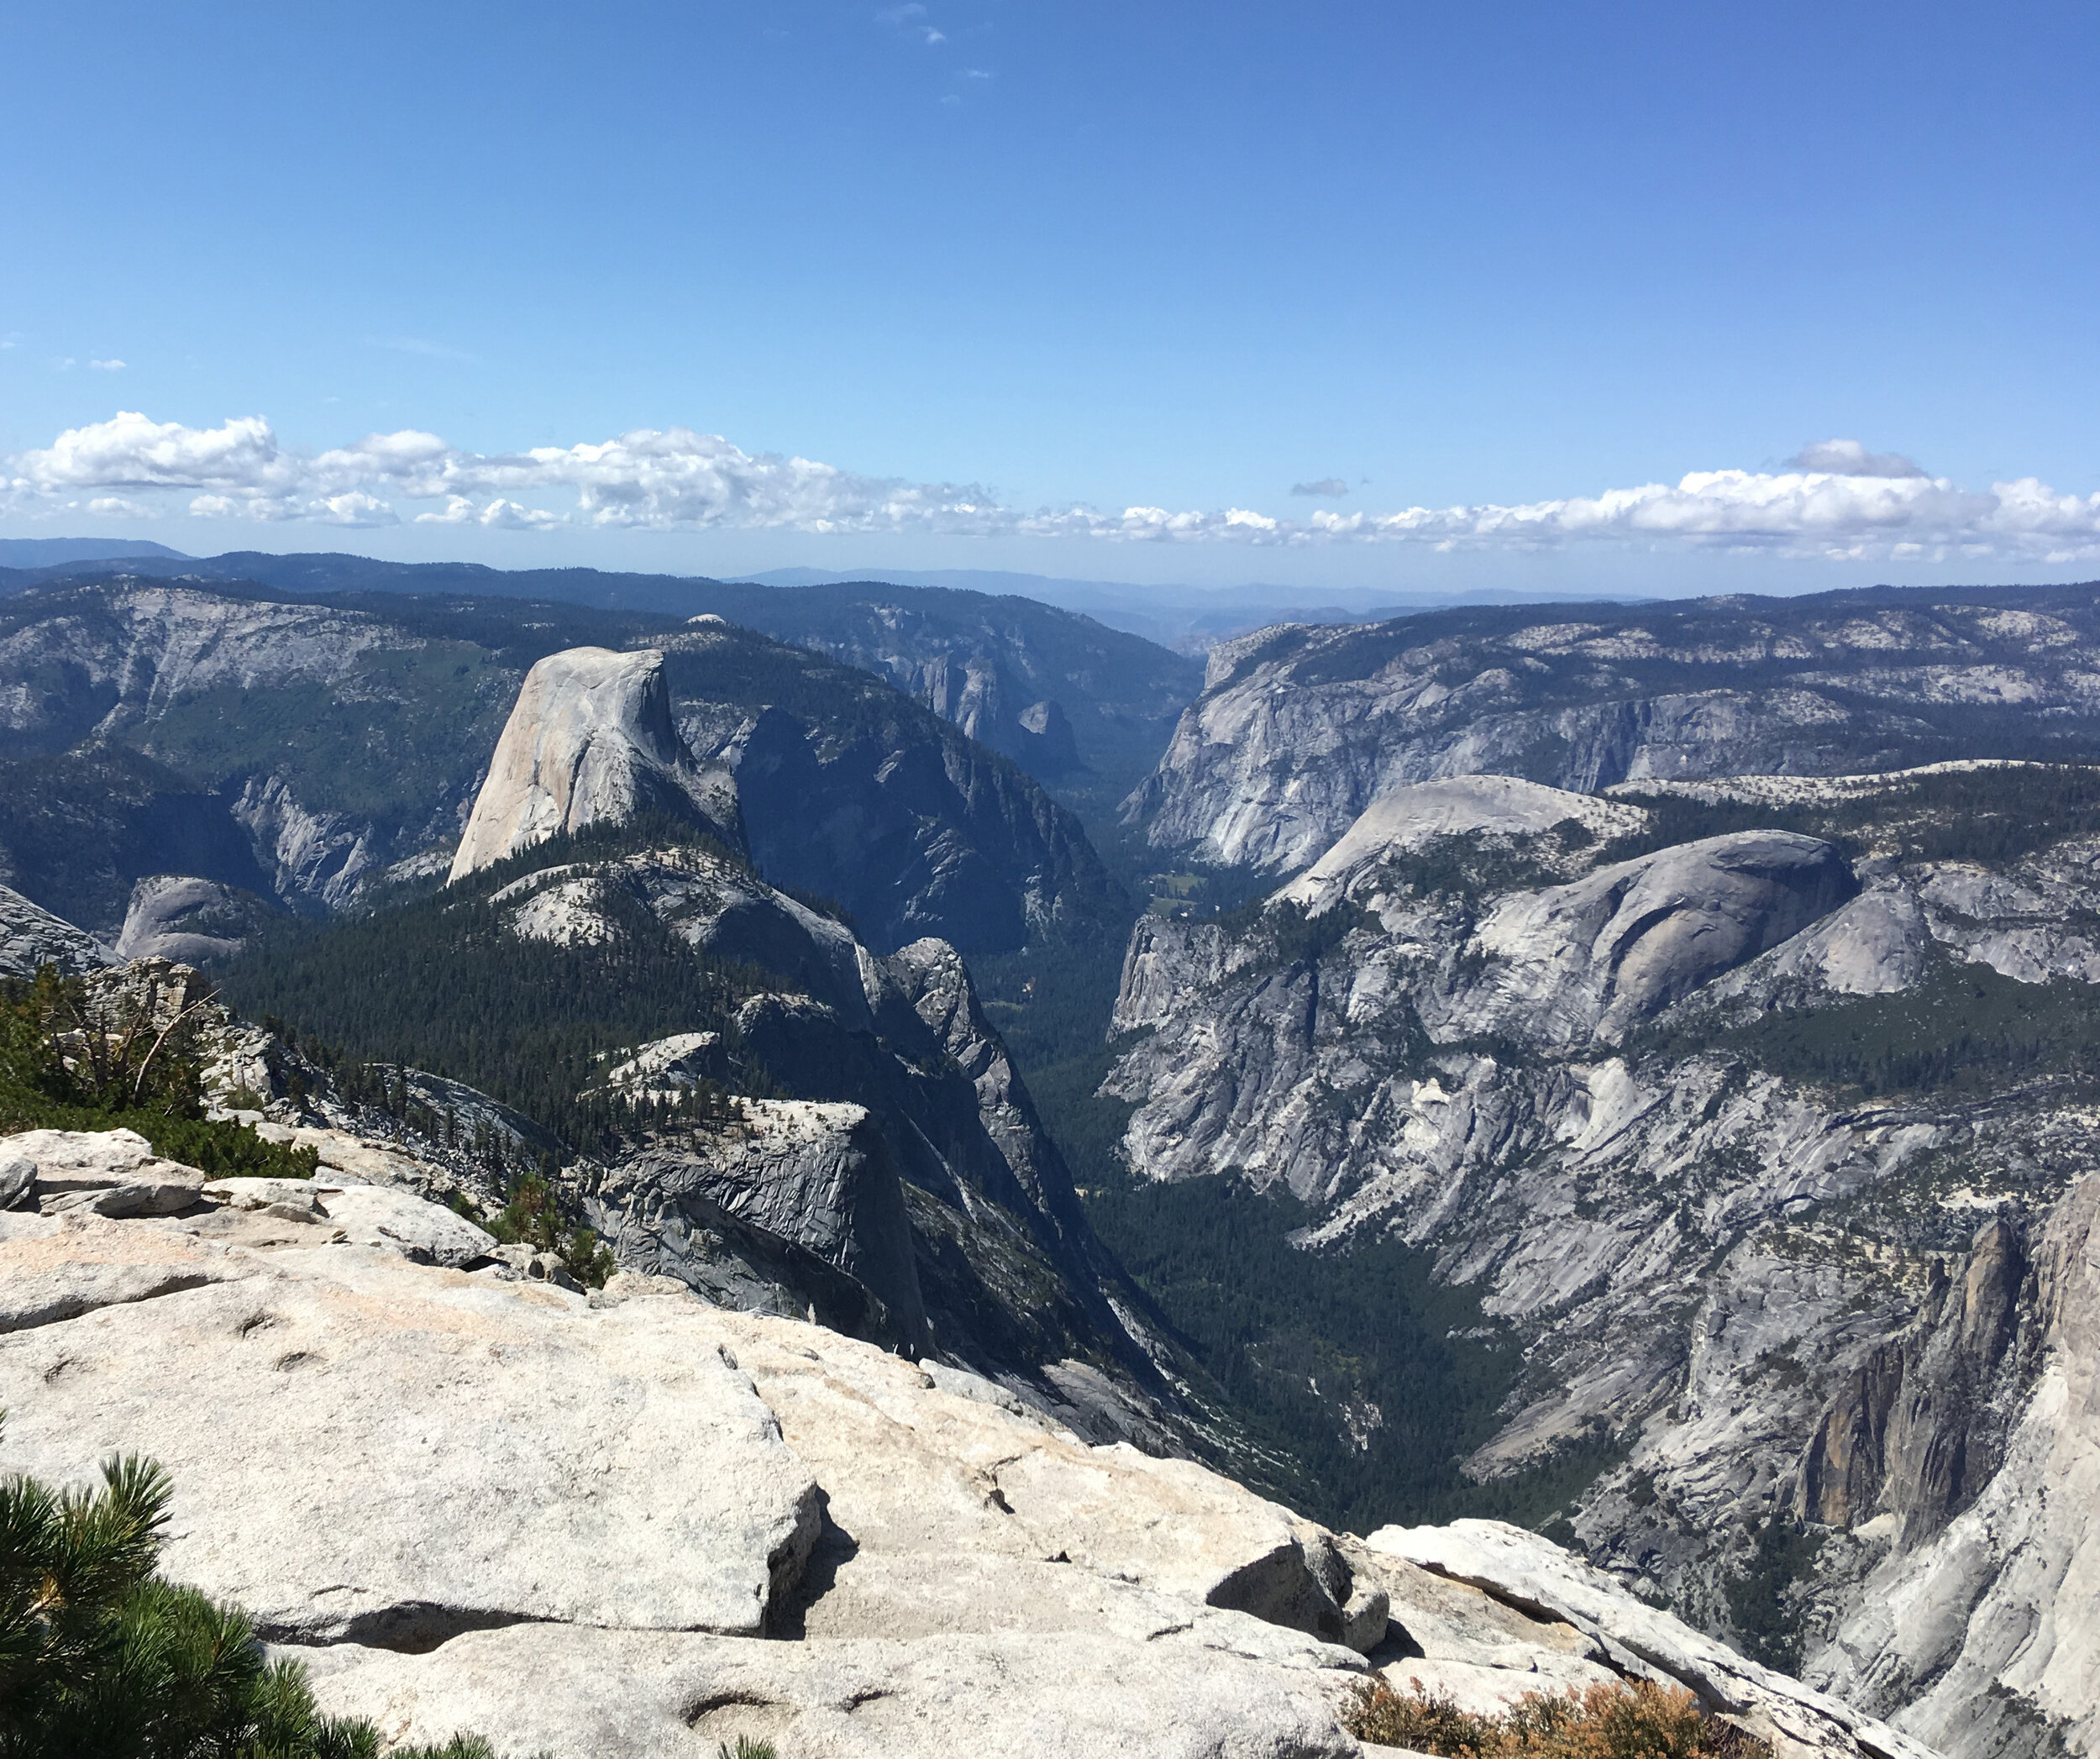 Half Dome and Yosemite Valley - September 2019 - As viewed from Clouds Rest. Glacier Point and Sentinel Dome are both visible in the background.